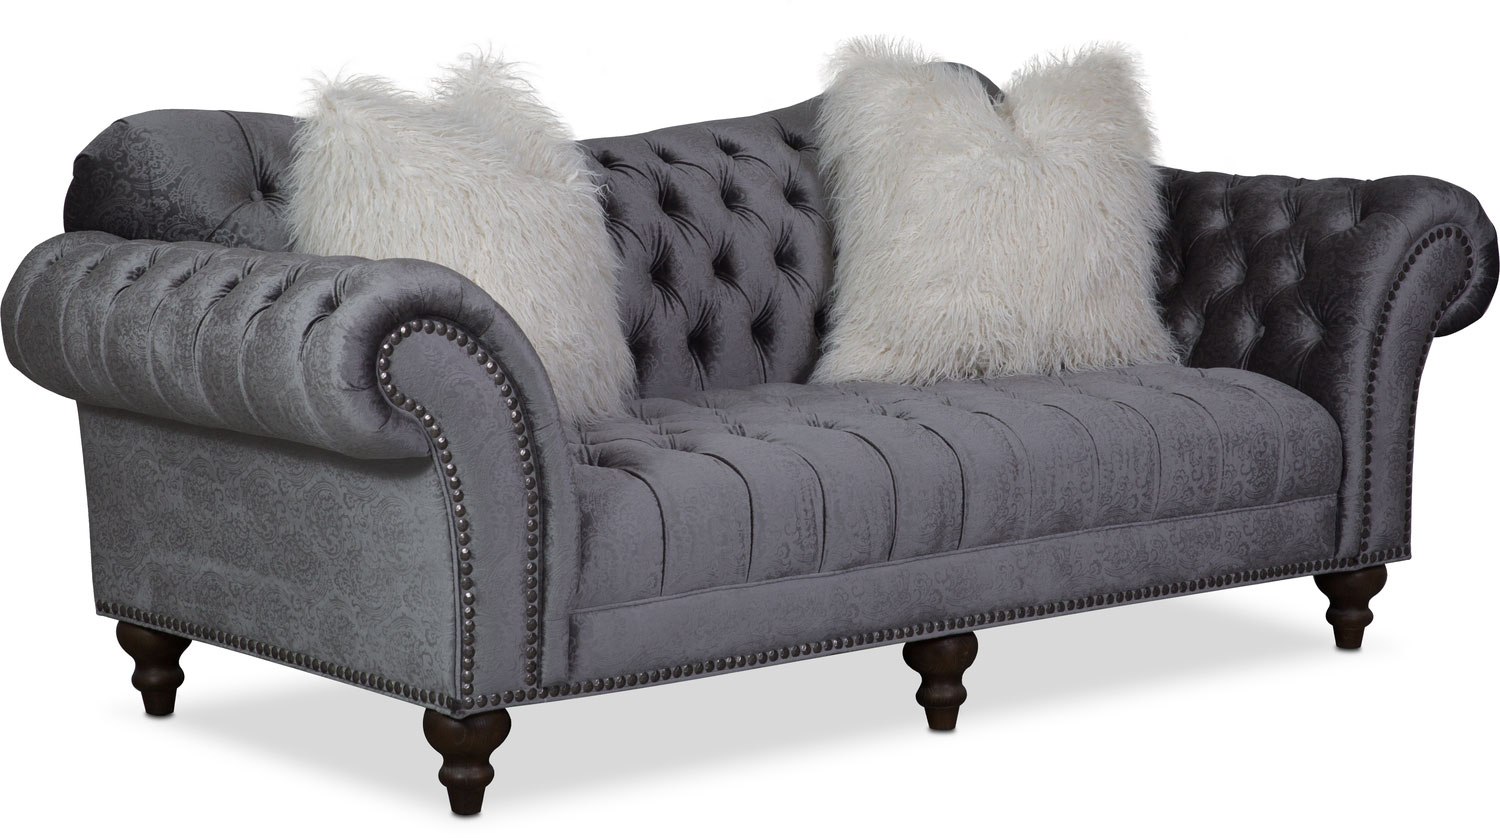 Living Room Furniture - Brittney Sofa - Charcoal